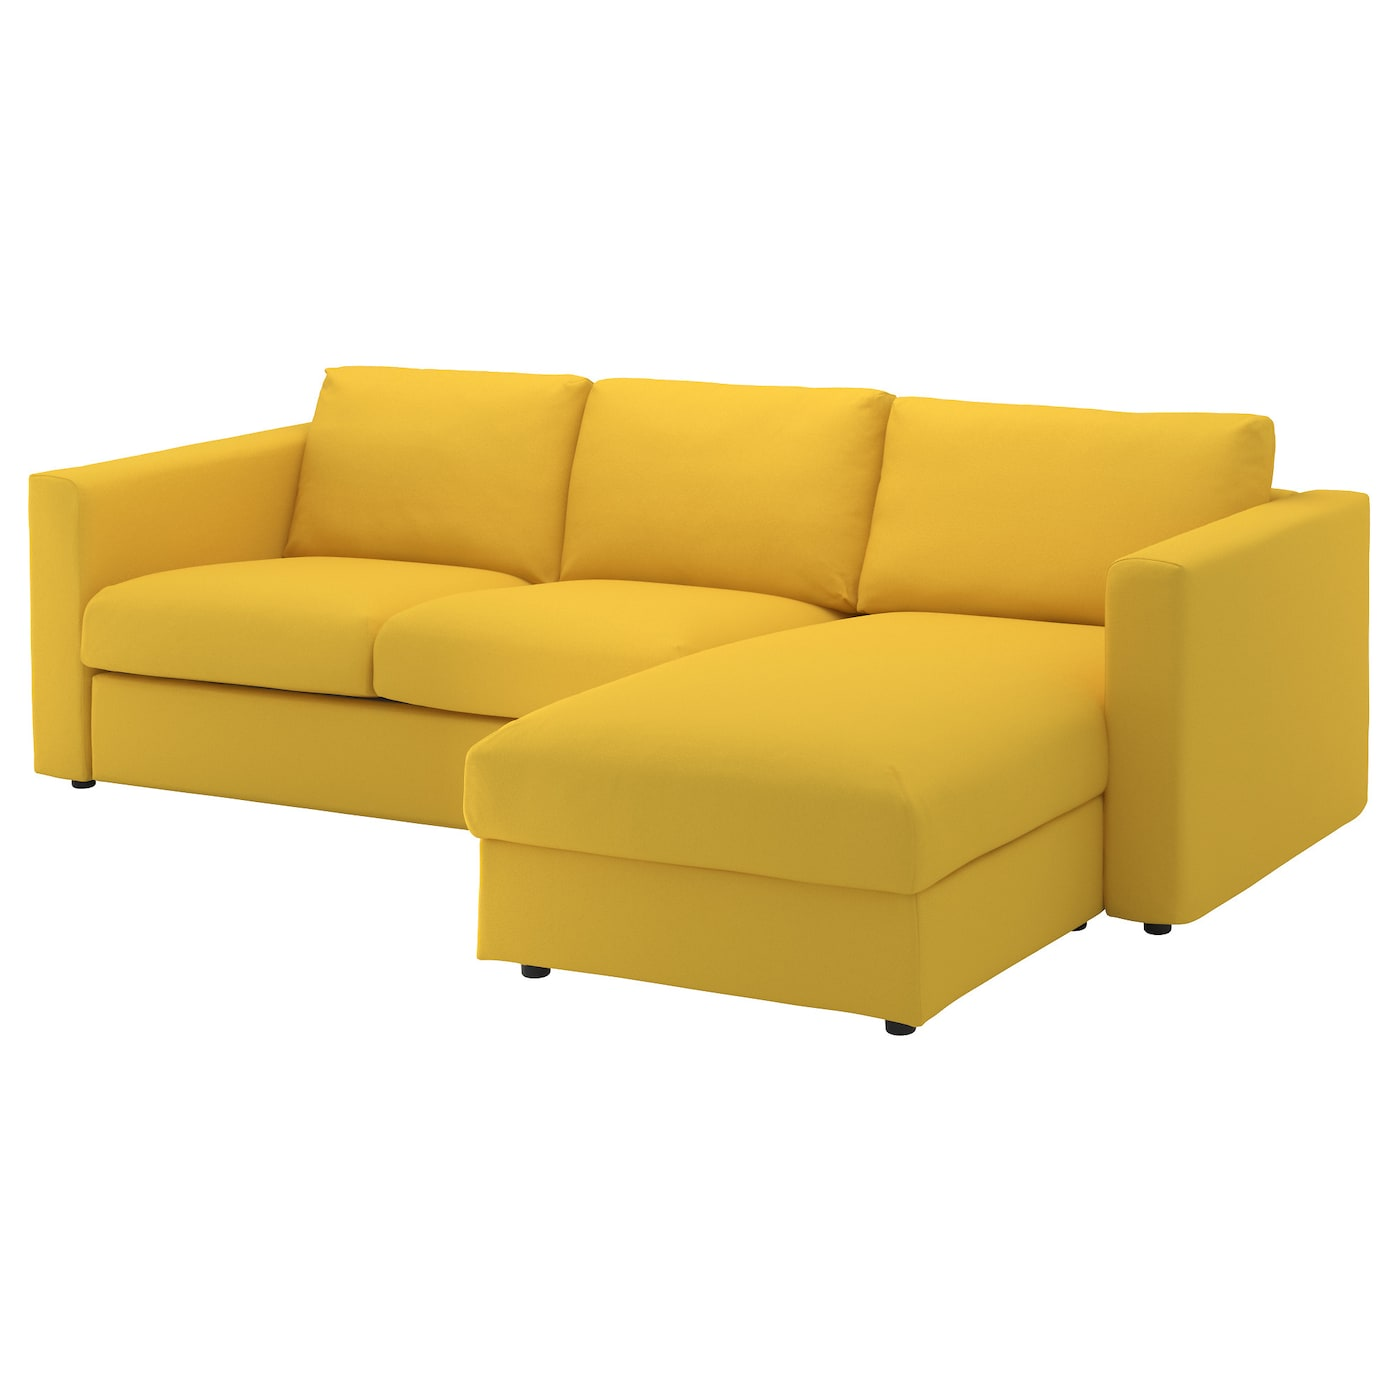 Fabric sofas ikea ireland dublin for Couch und sofa